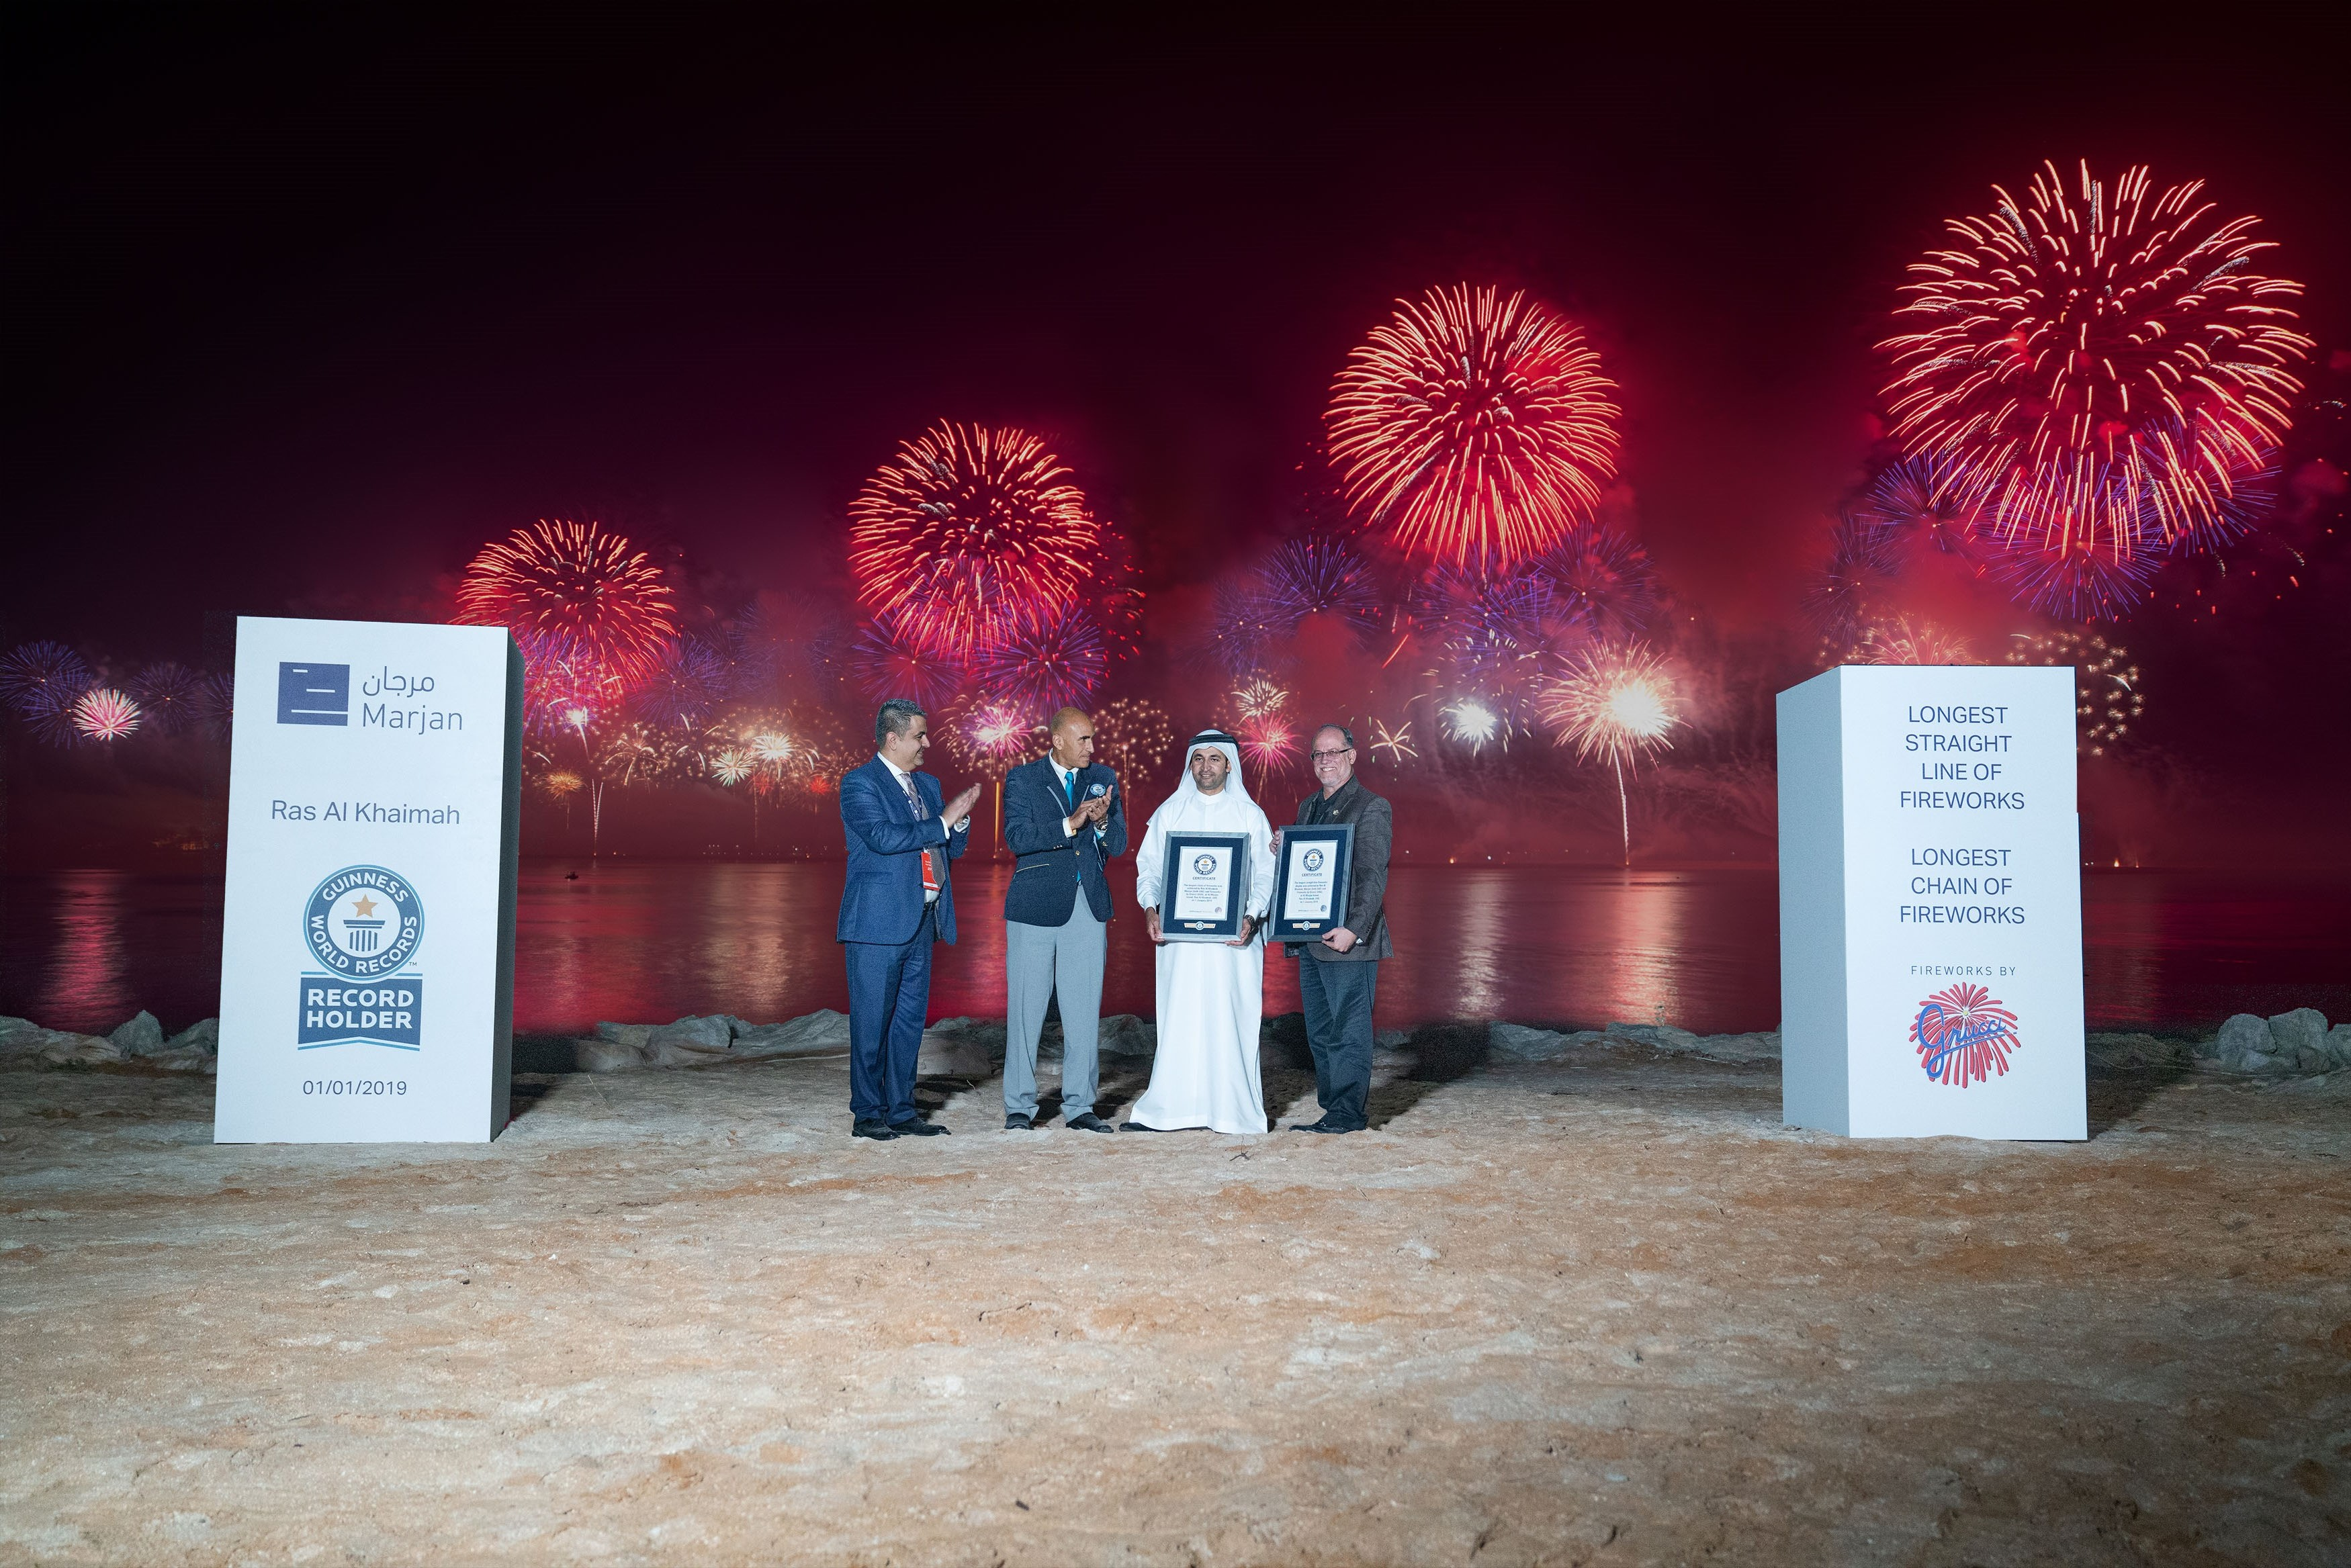 rak breaks two world records with new year fireworks display, reports paper 1